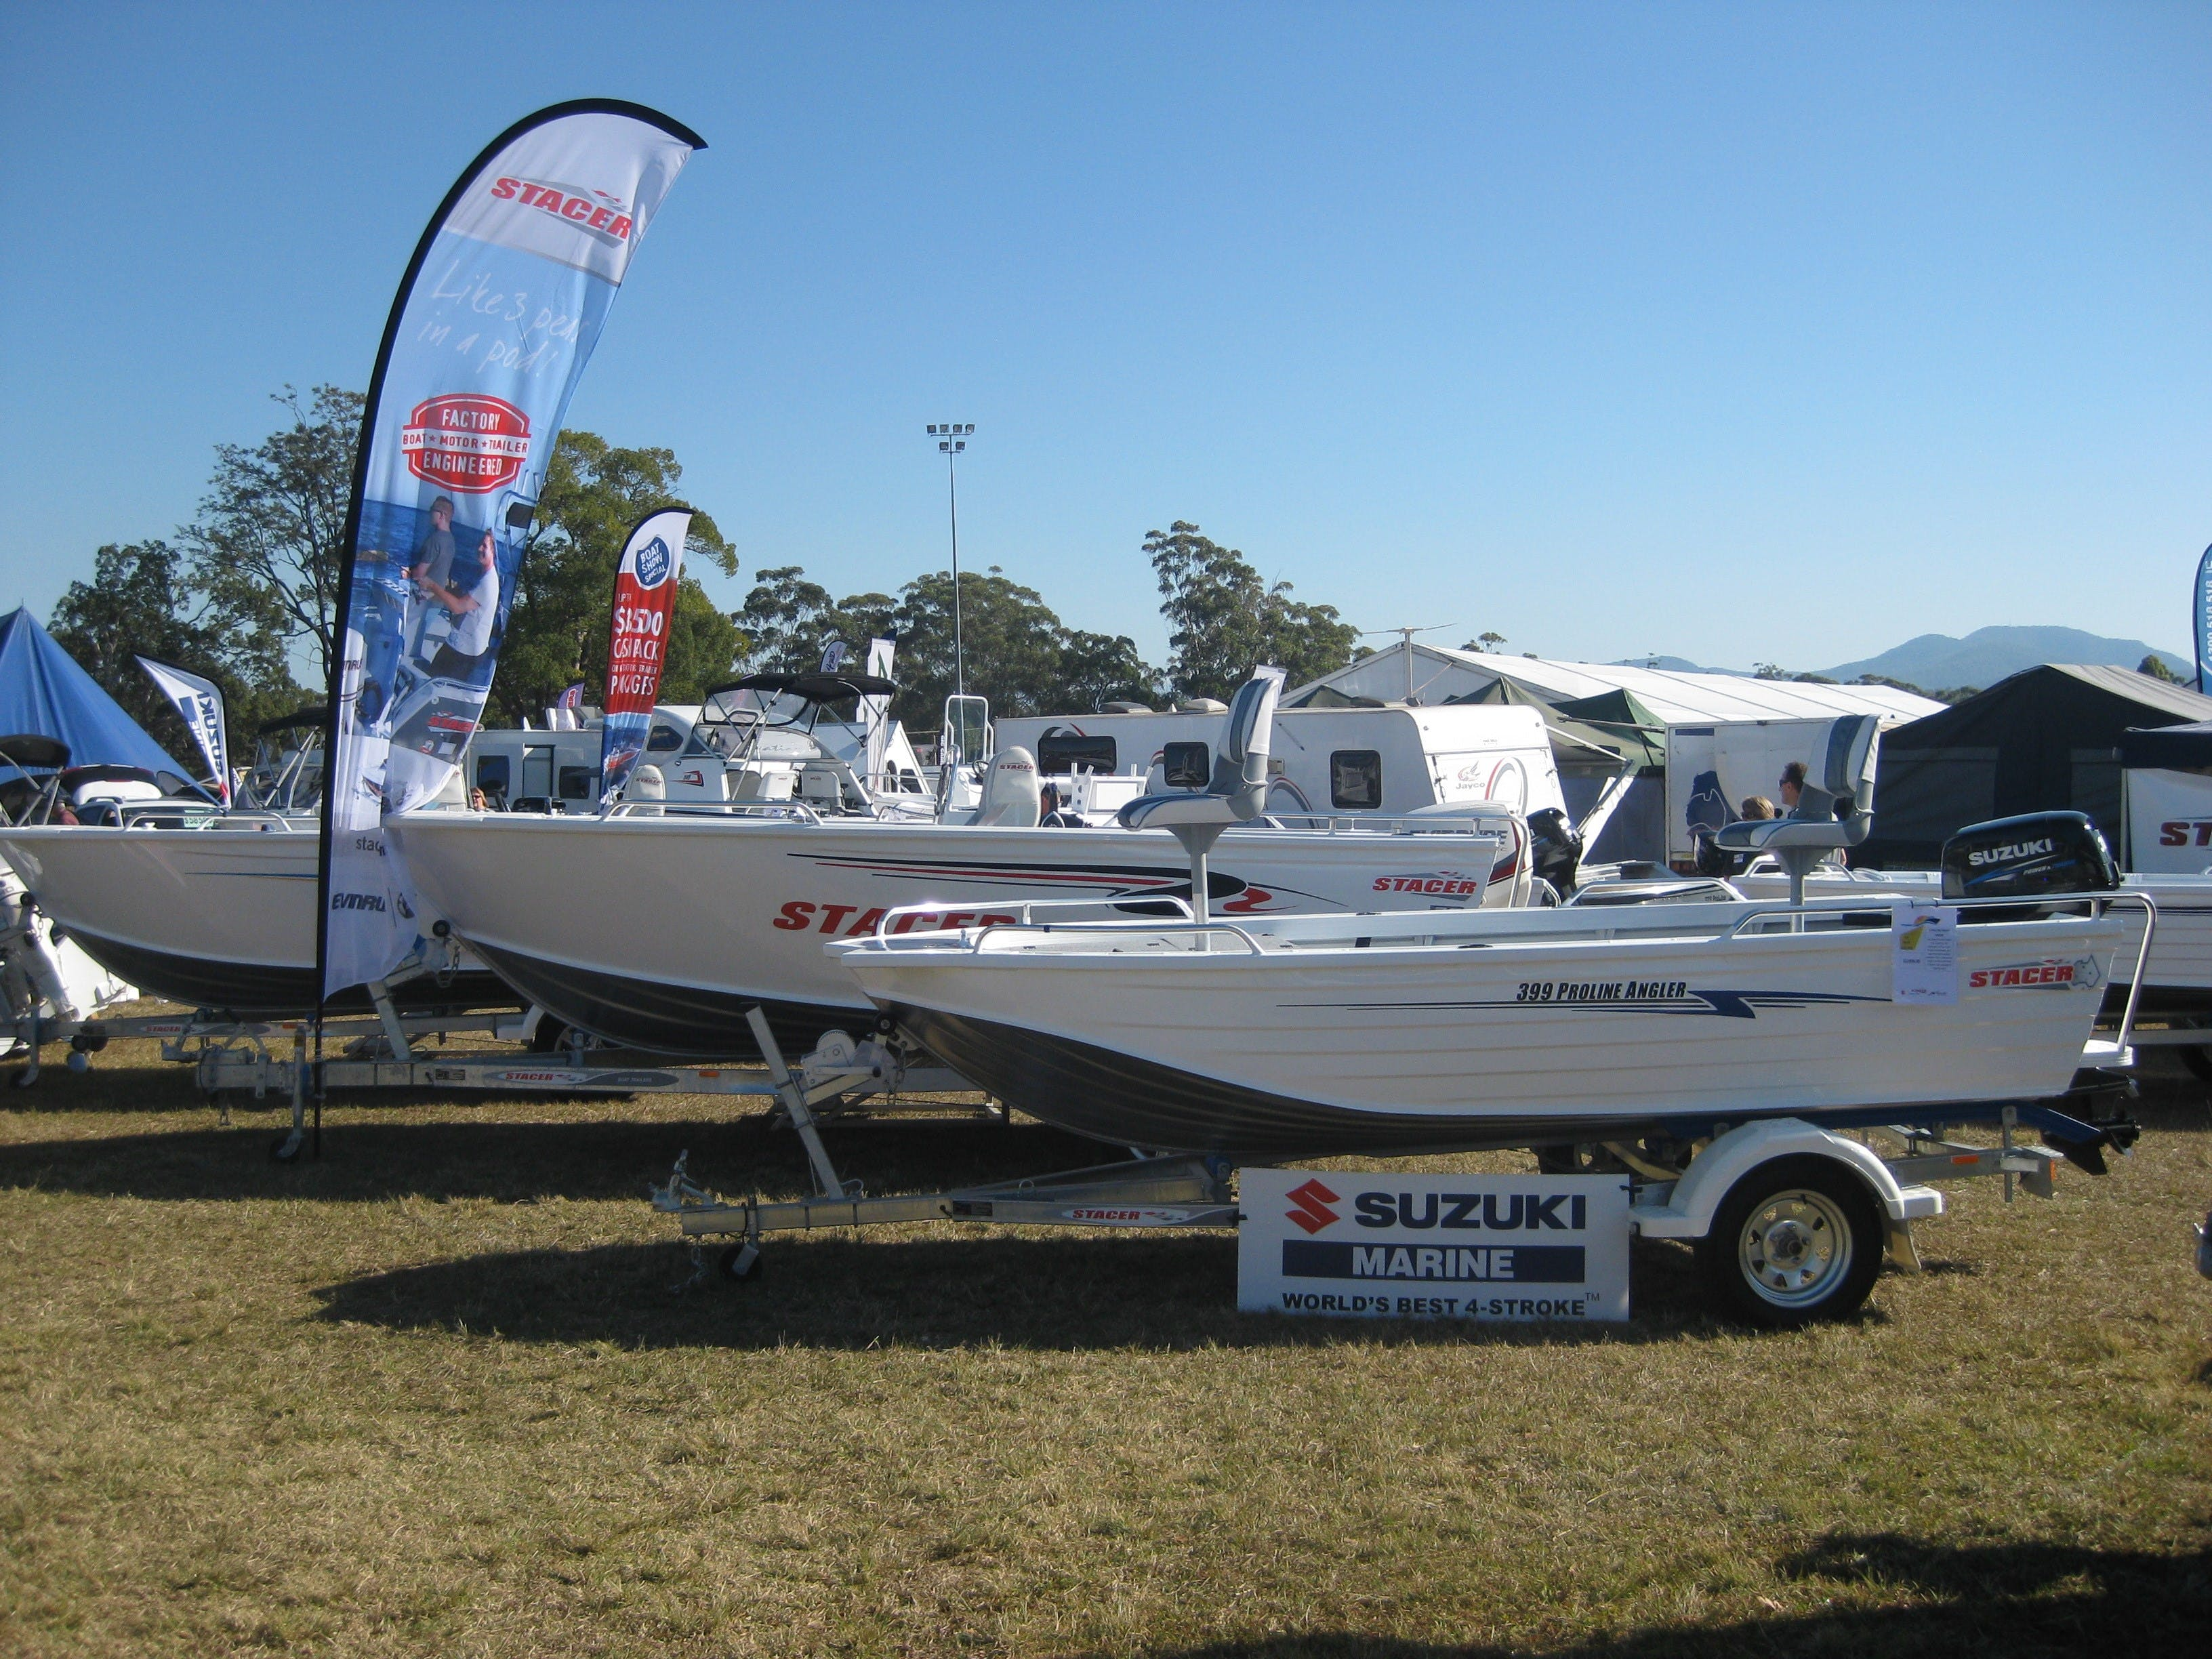 Mid North Coast Caravan Camping 4WD Fish and Boat Show - Surfers Gold Coast